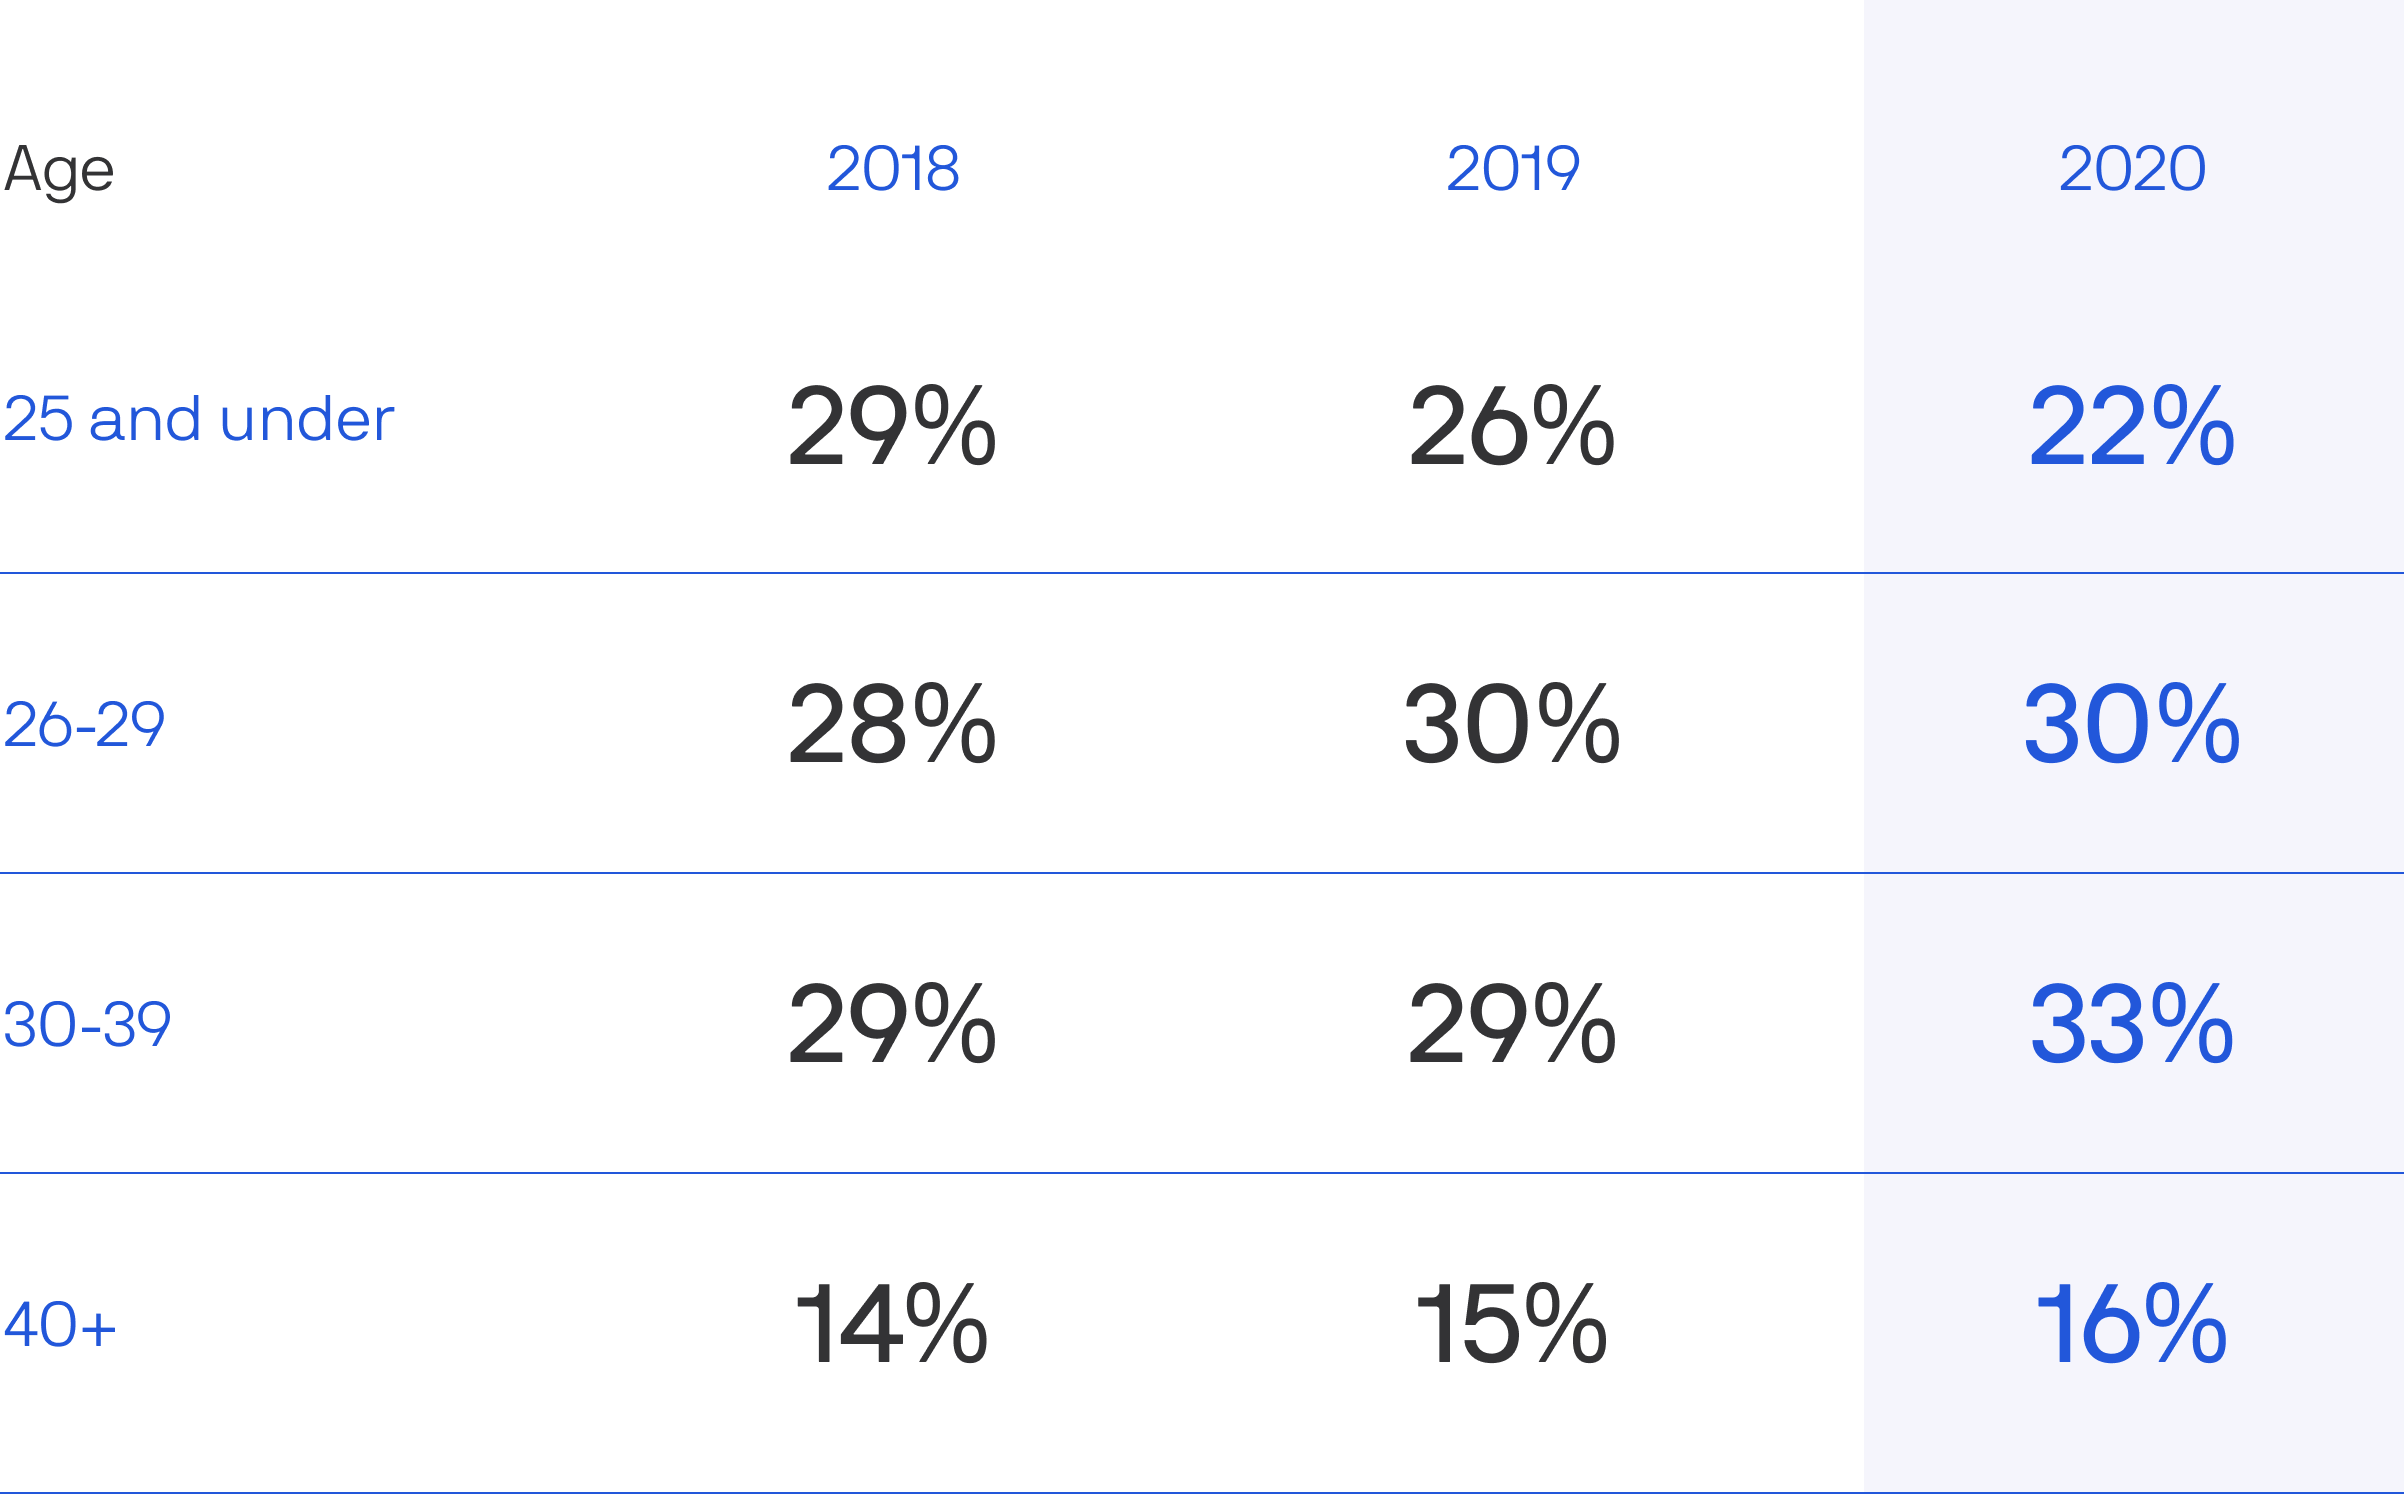 Chart of Axions' ages between 2018-2020